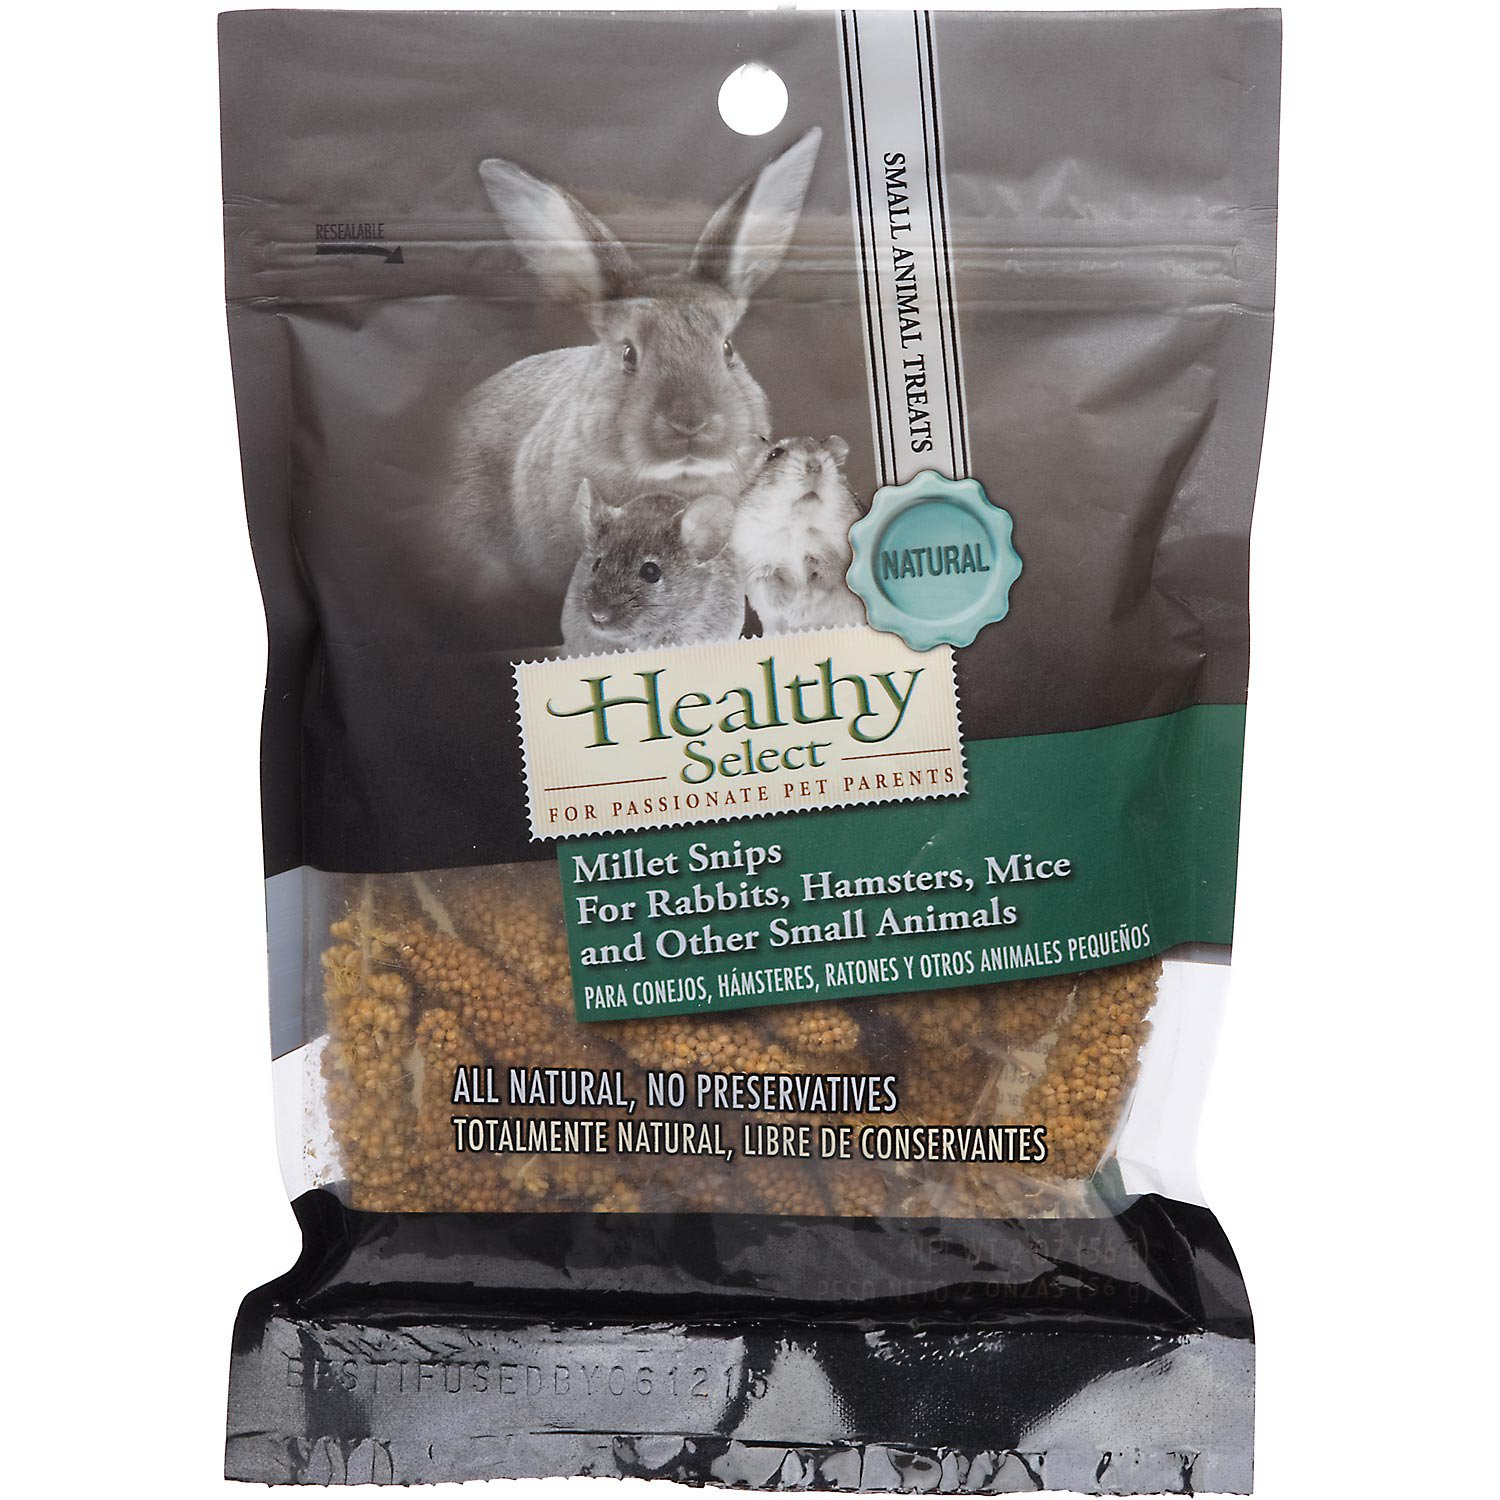 Healthy Select Natural Millet Snips for Small Animals